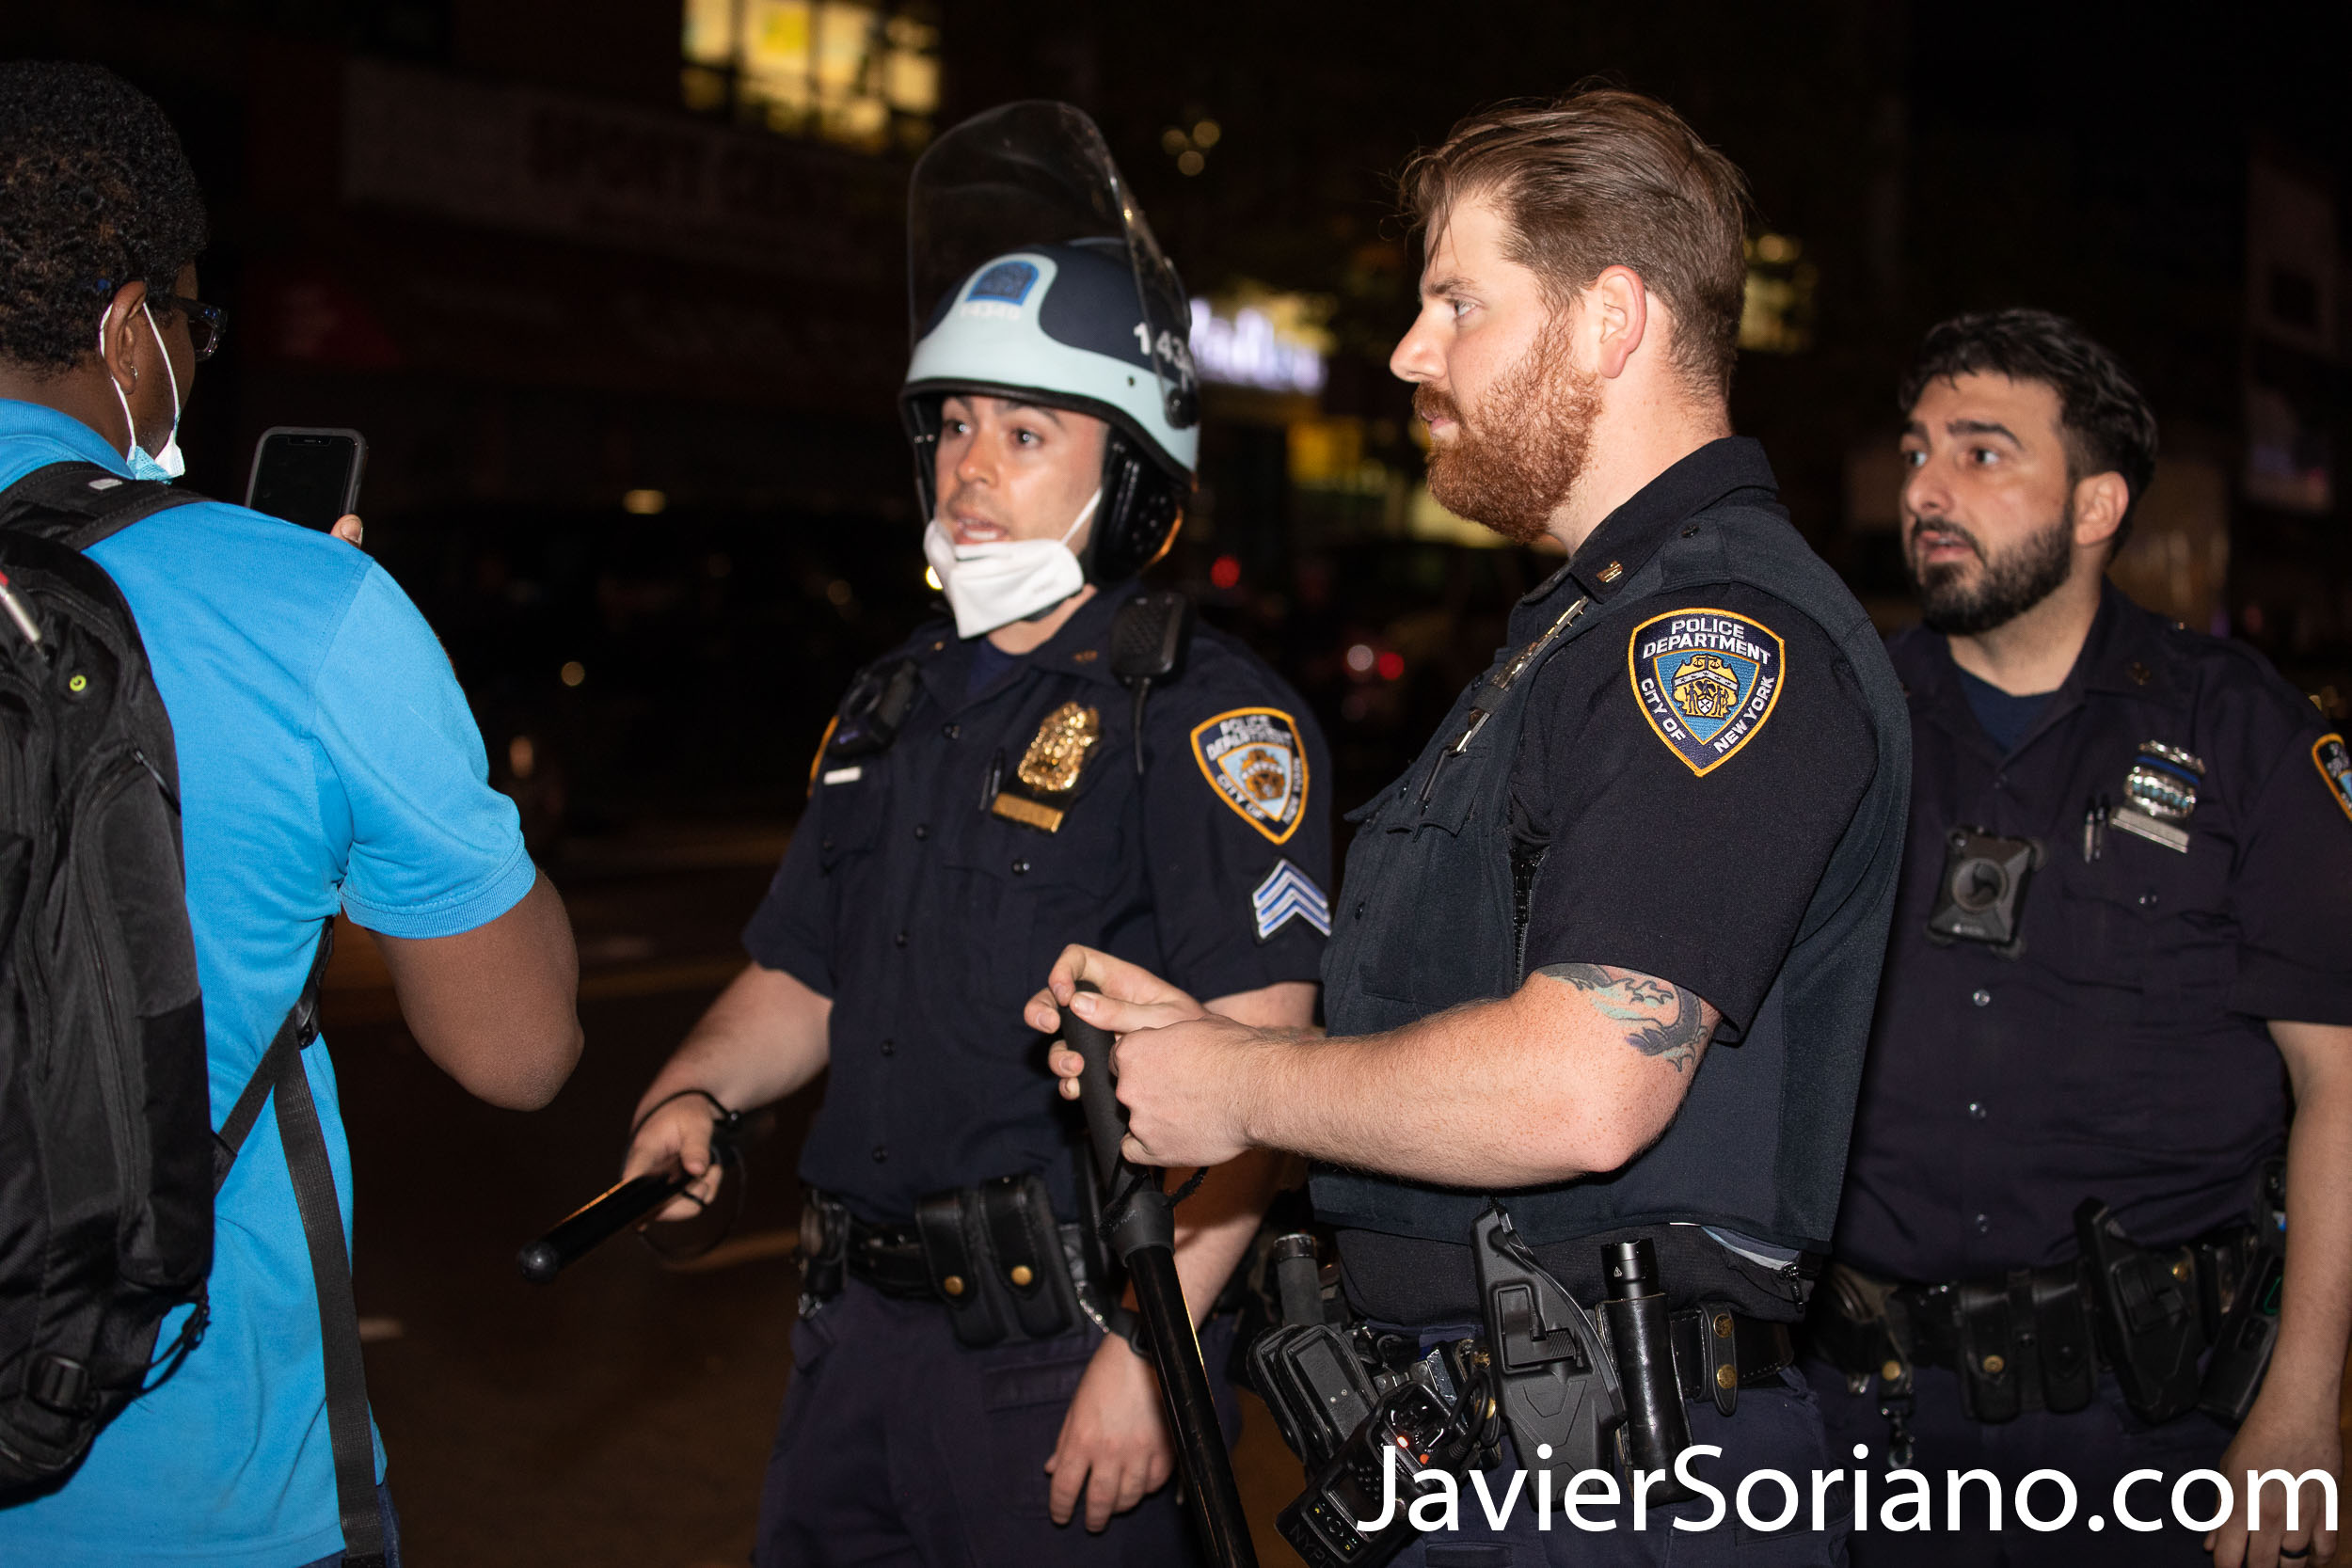 Sunday, May 31, 2020 (12:30 AM) Brooklyn, New York City - NYPD officers harassing a resident of Flatbush. The Black man is not a demonstrator, he just want to get to his home.  The NYPD officers in the photo are not wearing a mask. New York governor, Andrew Cuomo and NYC Mayor, Bill de Blasio say, we need to wear a mask (it can be a home made mask). According to data from Johns Hopkins University, until today, 5/31/2020, more than 30,000 people have died of COVID-19 in New York state.   Photo by Javier Soriano/www.JavierSoriano.com